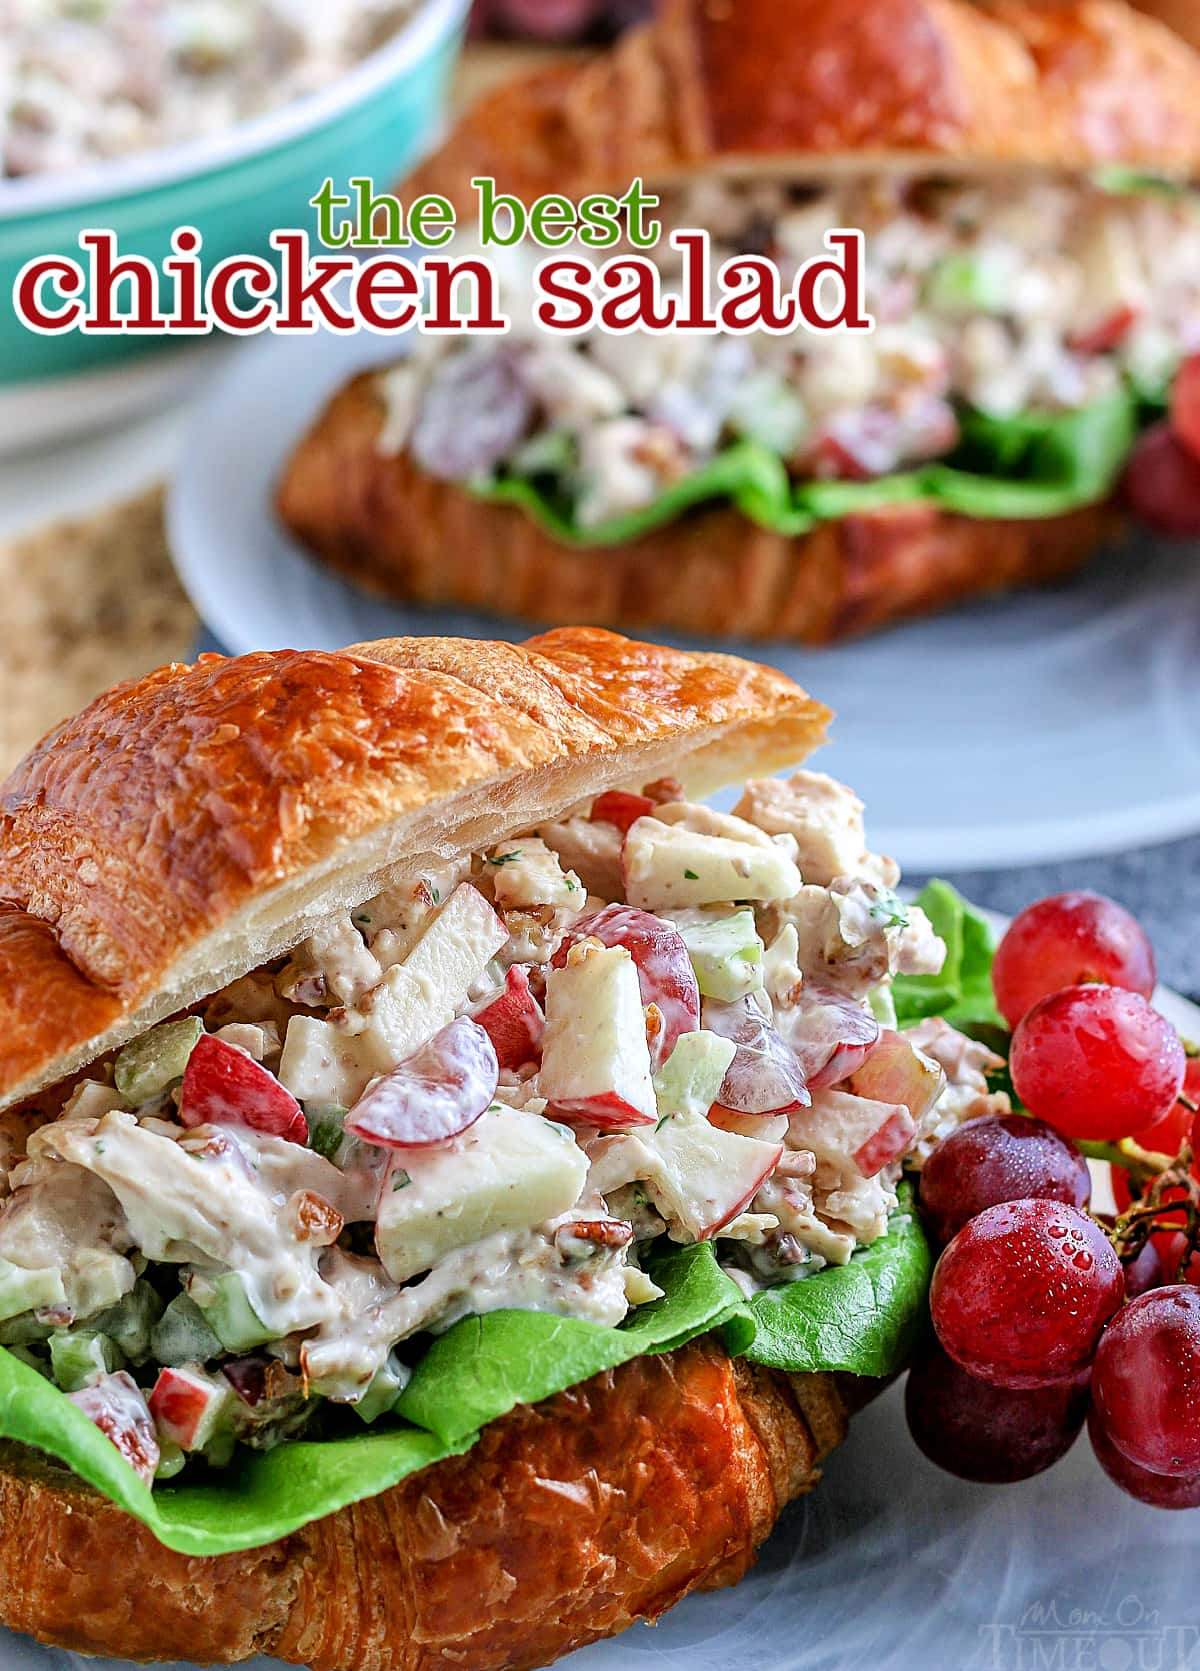 close up view of best chicken salad recipe served on croissant with grapes on the side and text overlay